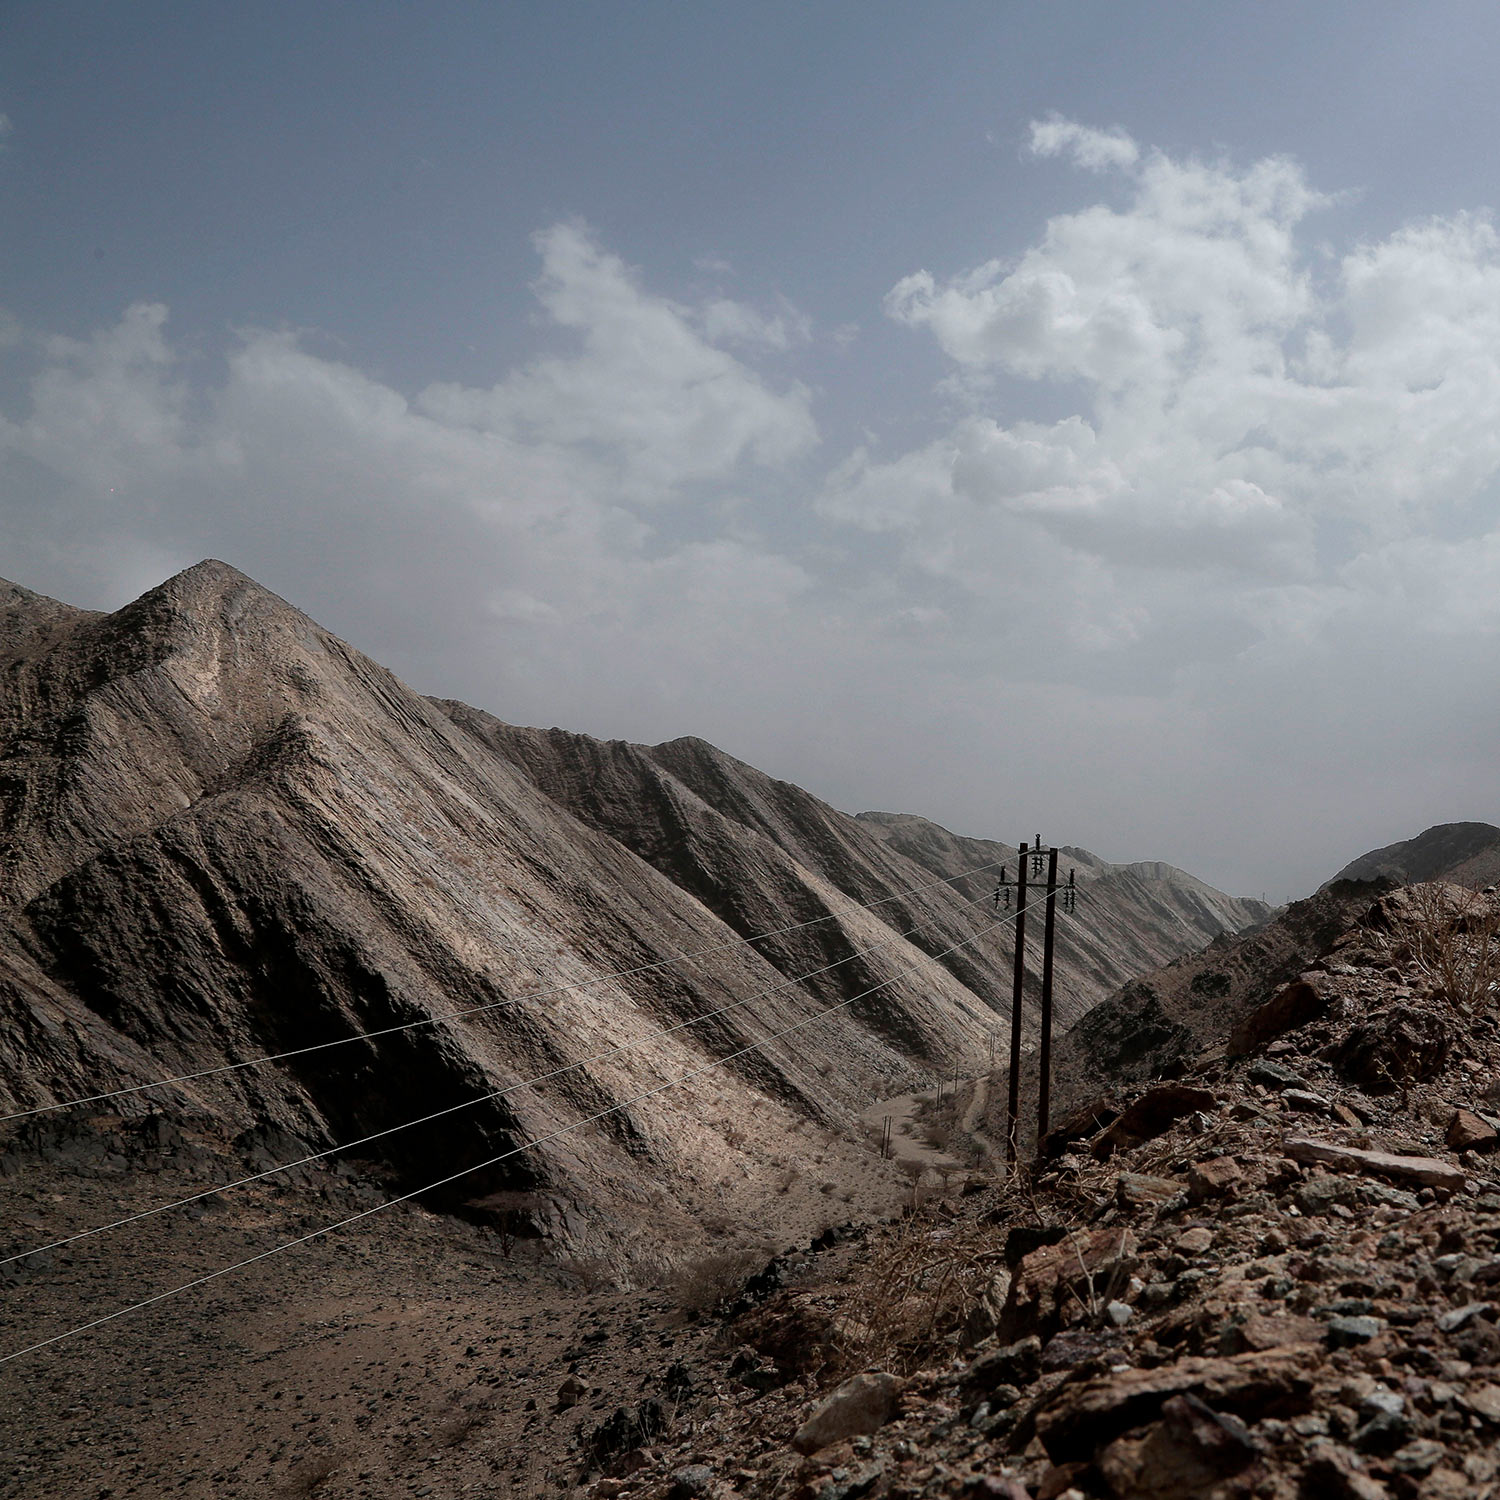 This Aug. 6, 2018 photo, shows mountains in Bayda, Yemen. (AP Photo/Nariman El-Mofty)